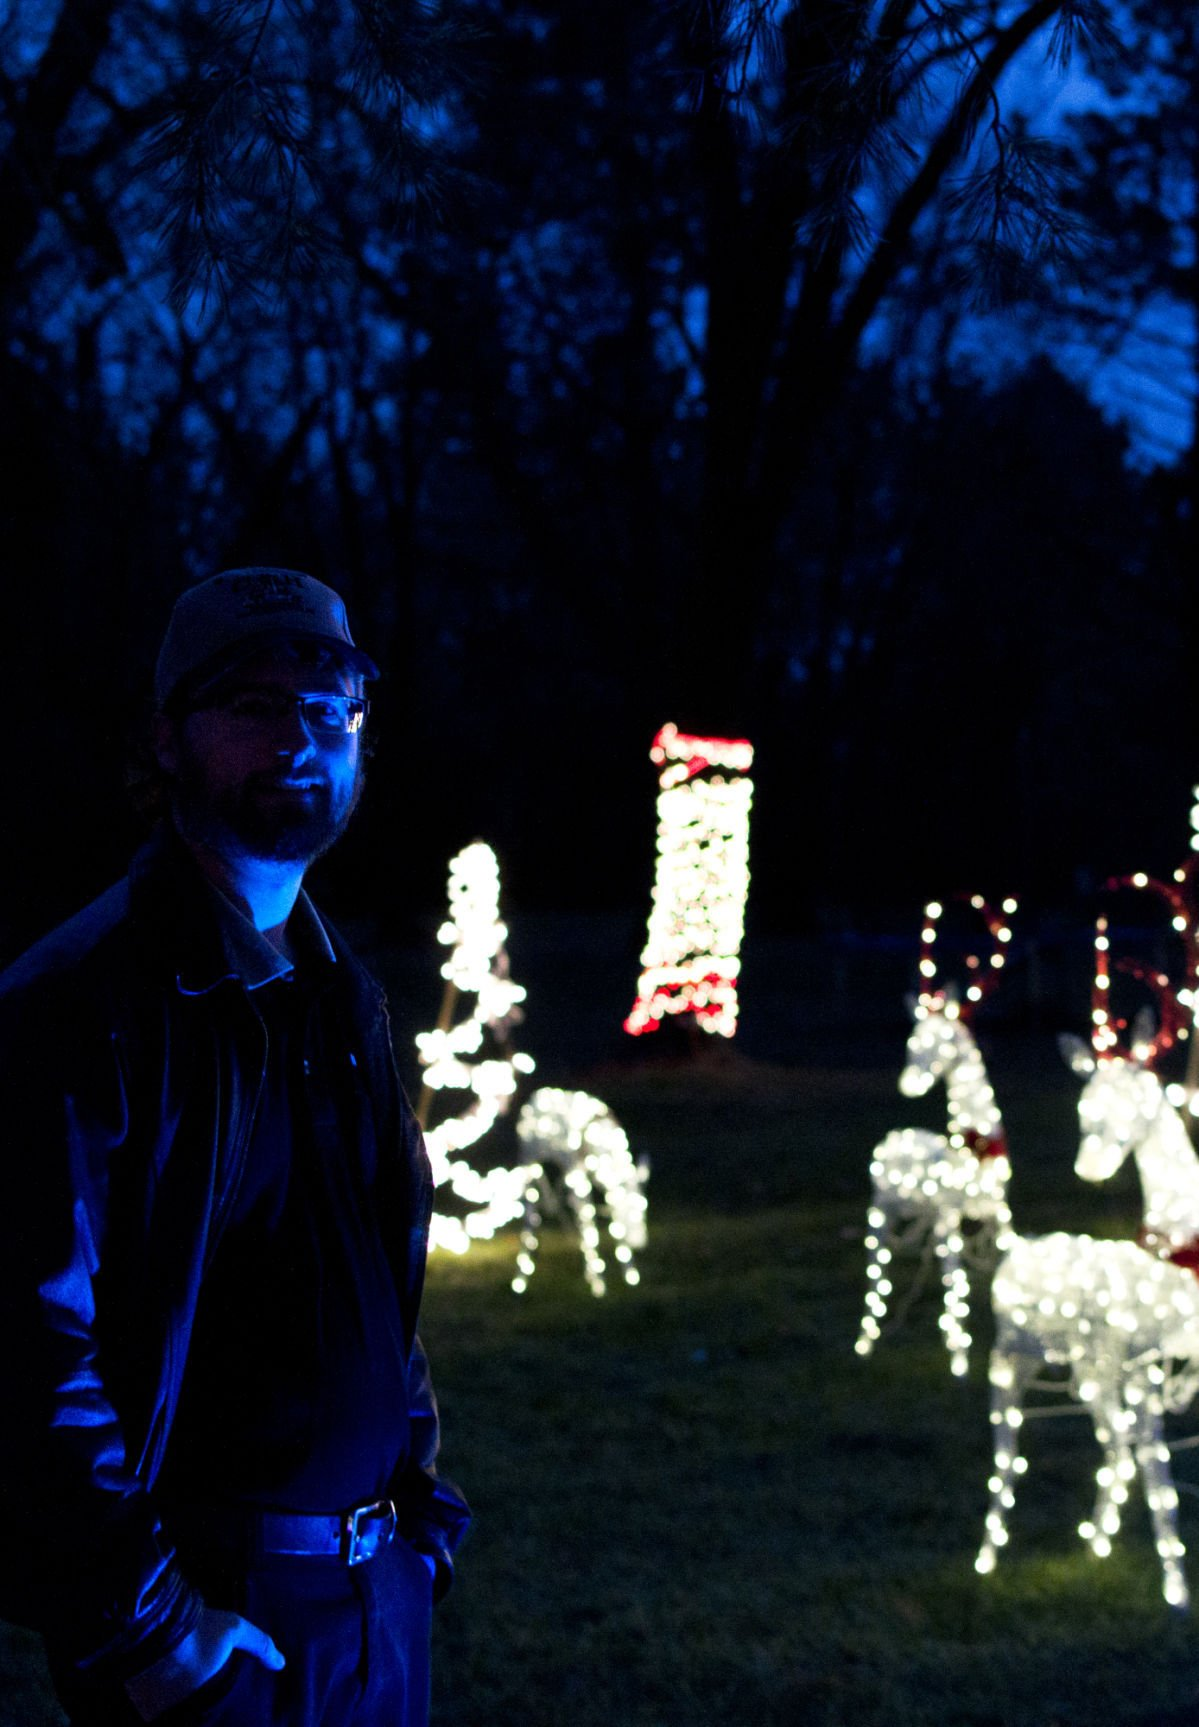 Christmas Drives 2020 Sioux City Iowa New Christmas light show brightens South Sioux City | Local